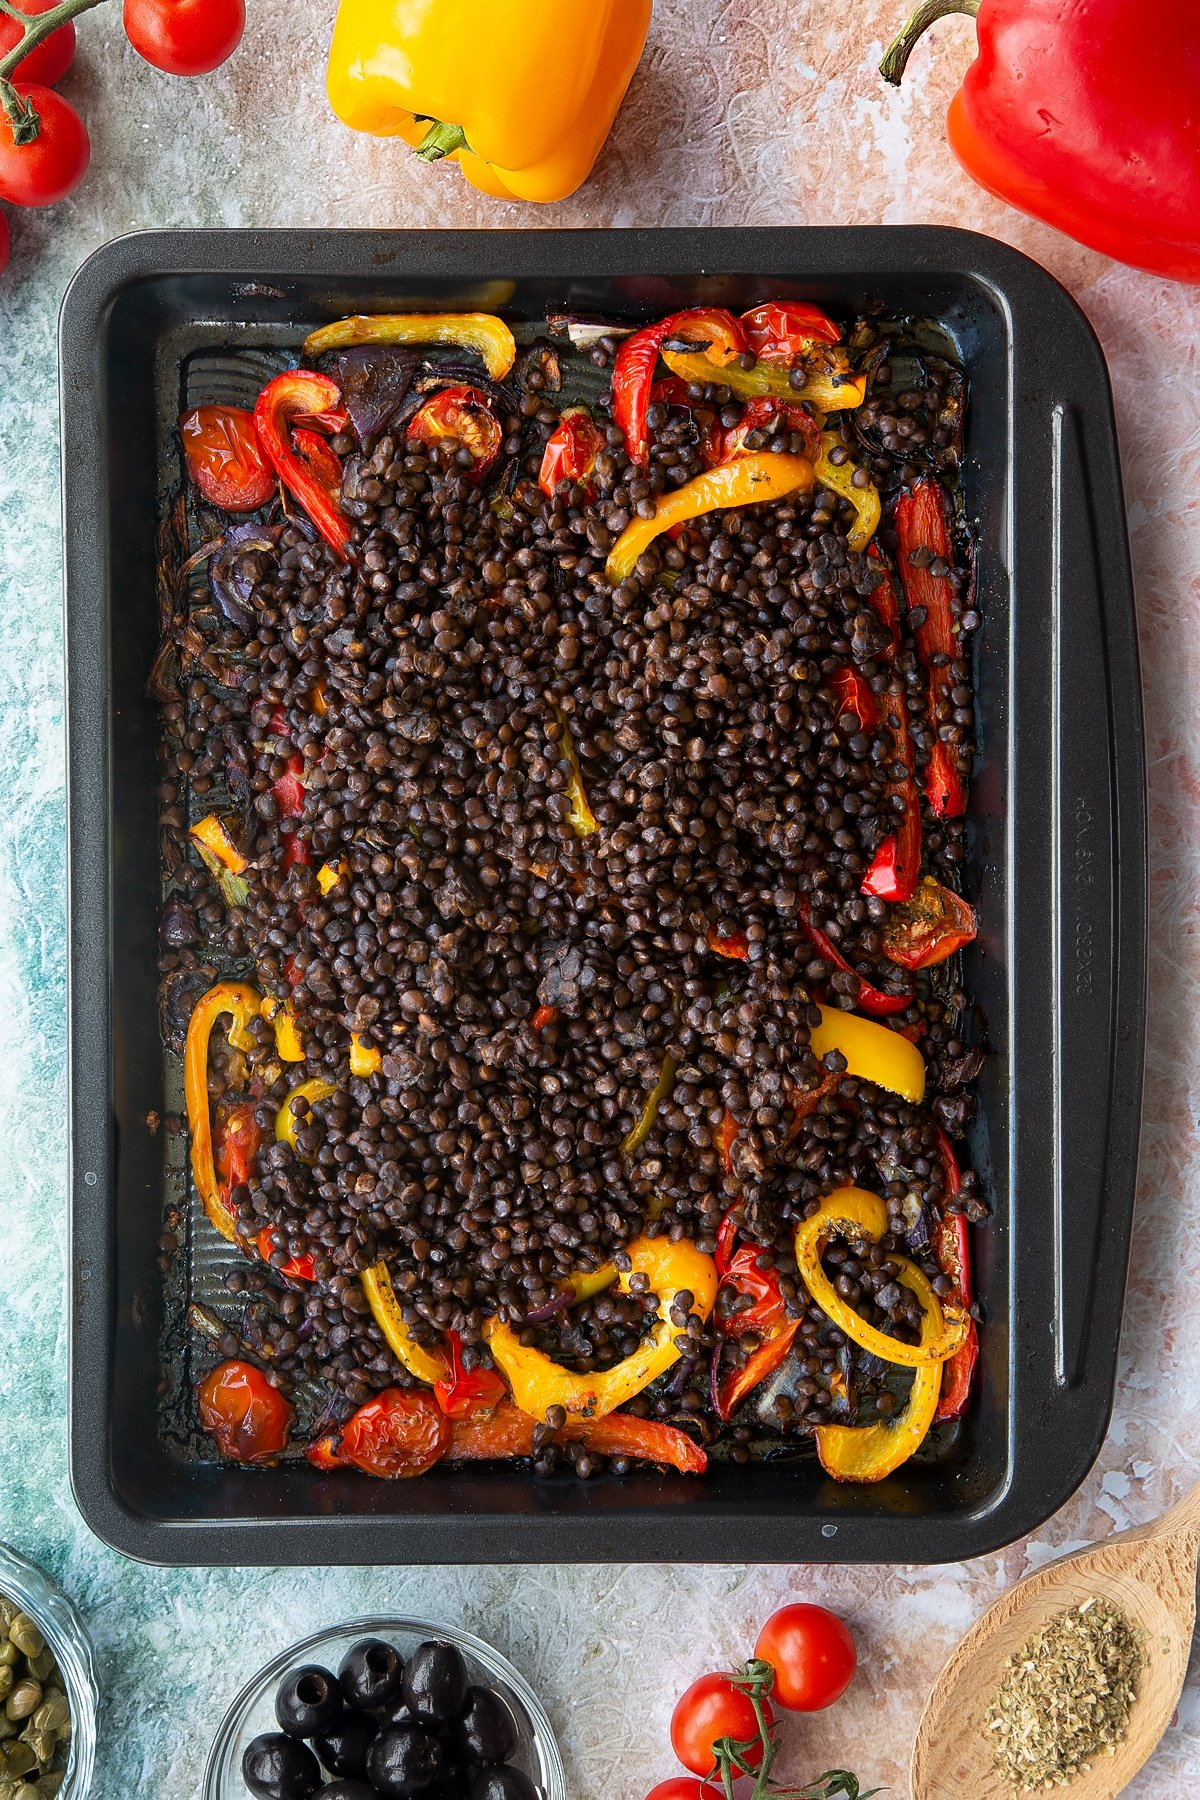 Roasted cherry tomatoes, peppers and onions in an oven tray, topped with cooked puy lentils. Ingredients to make vegan lentil salad surround the tray.